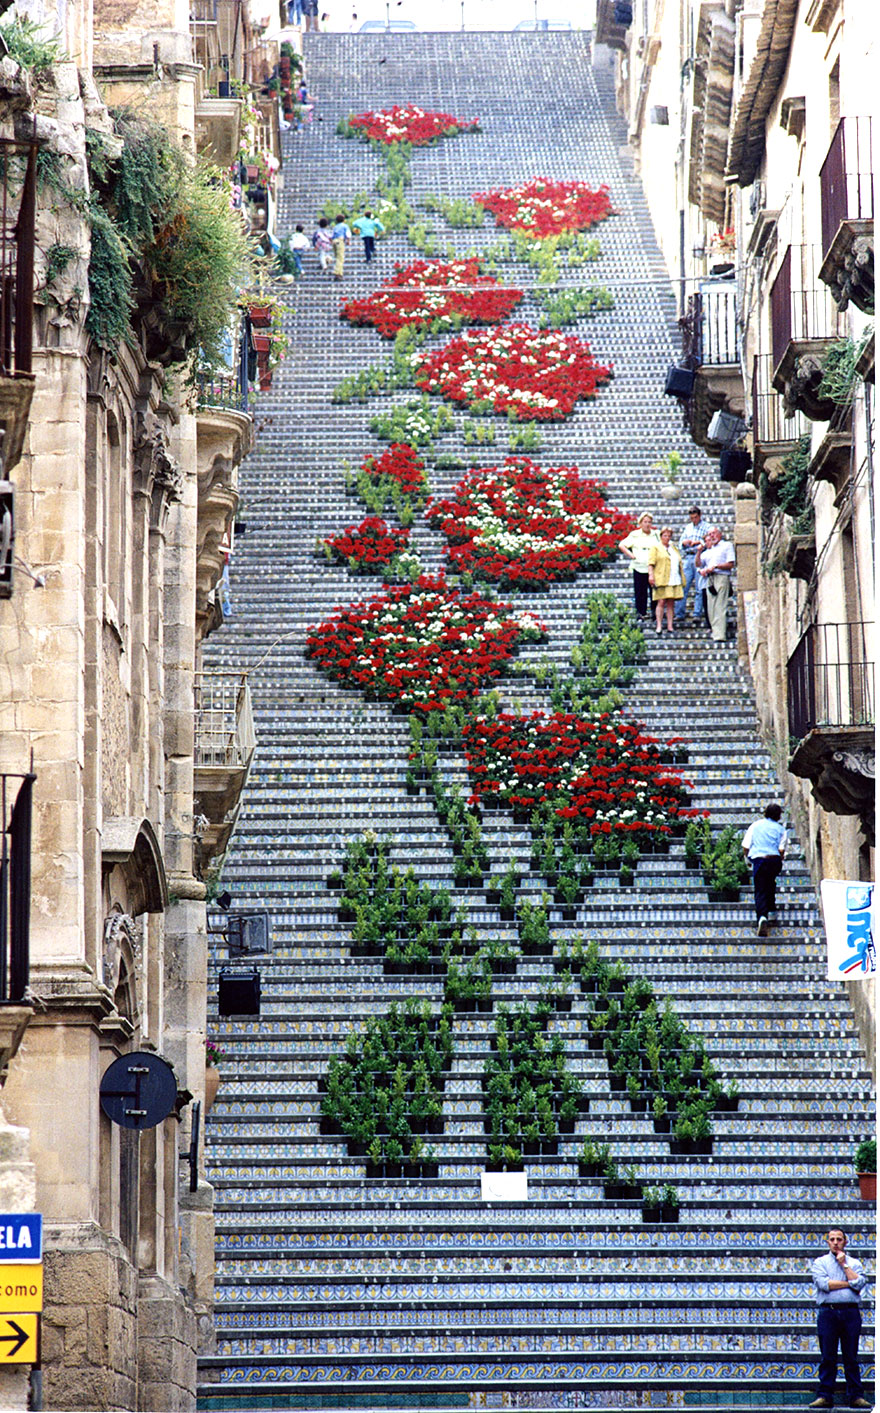 creative-stairs-street-art-6-1.jpg